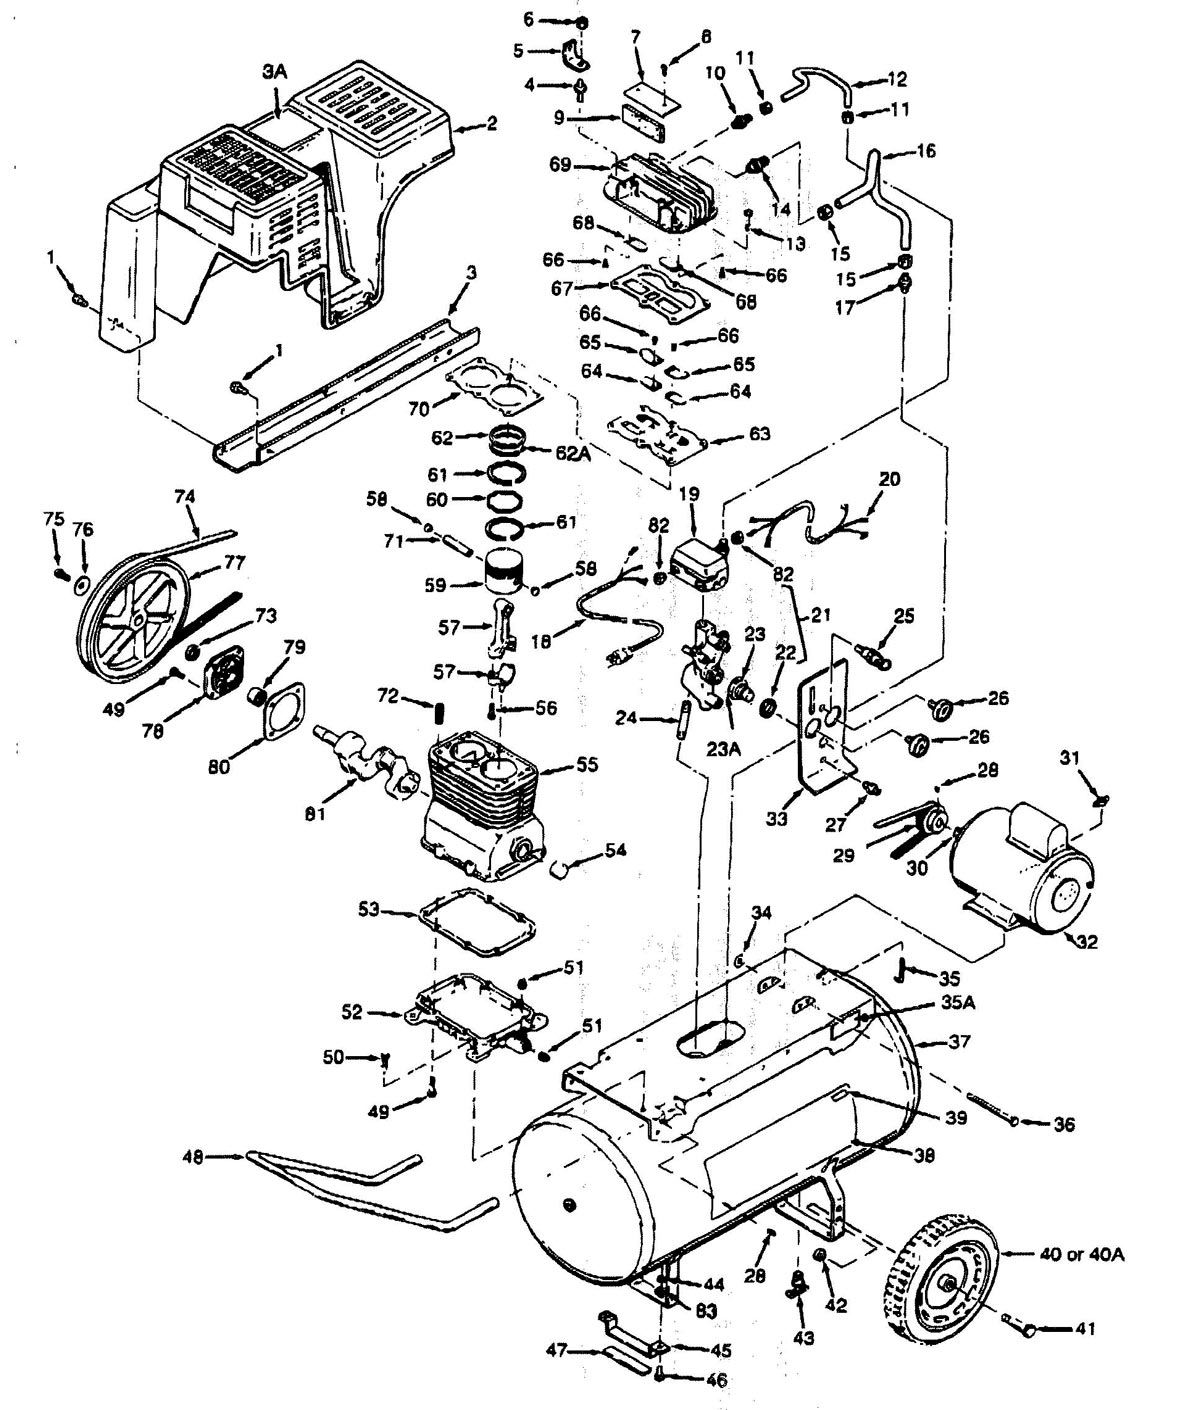 Train Horn Pressor Wiring Diagram Train Horn Remote